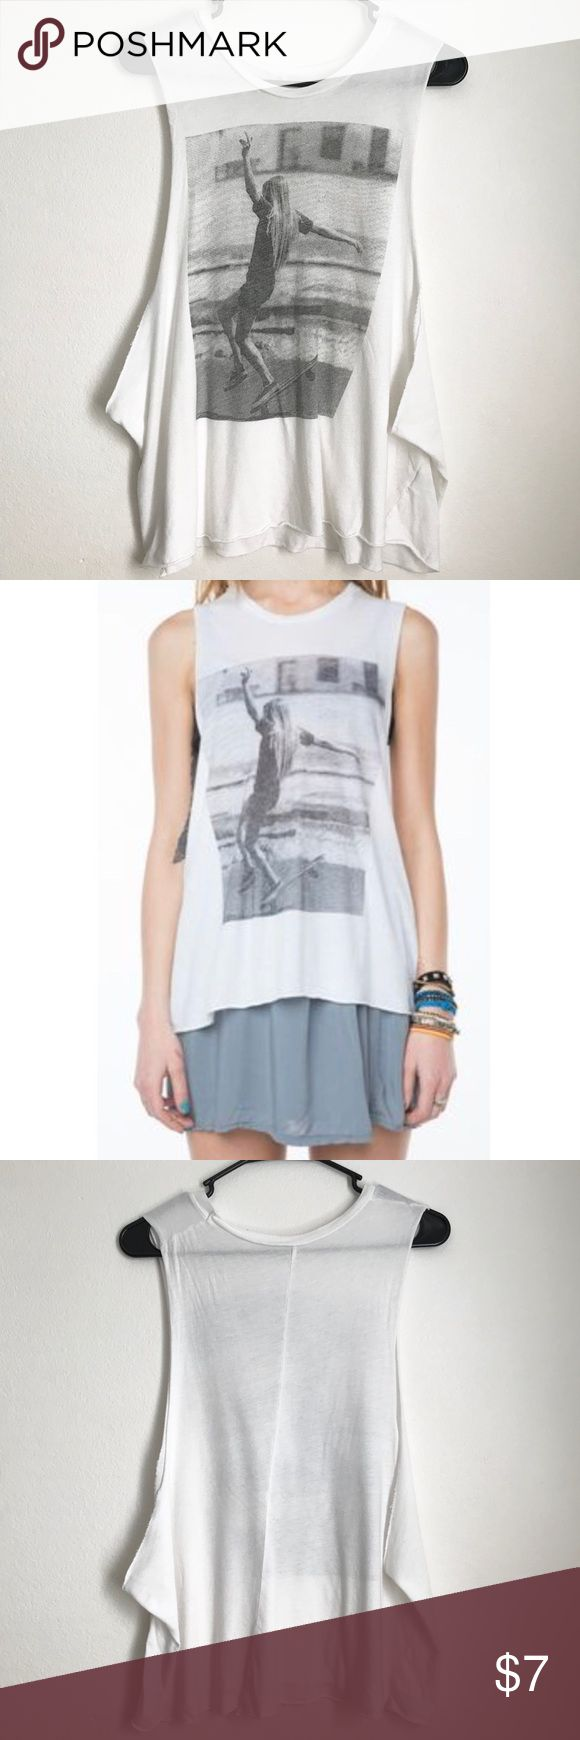 Brandy Melville White Muscle Tank Brandy Melville white muscle tank with a skater girl graphic on the front and low cut arm holes.    Super cute for over swimsuits or sports bras - or going out paired with denim! Brandy Melville Tops Tank Tops